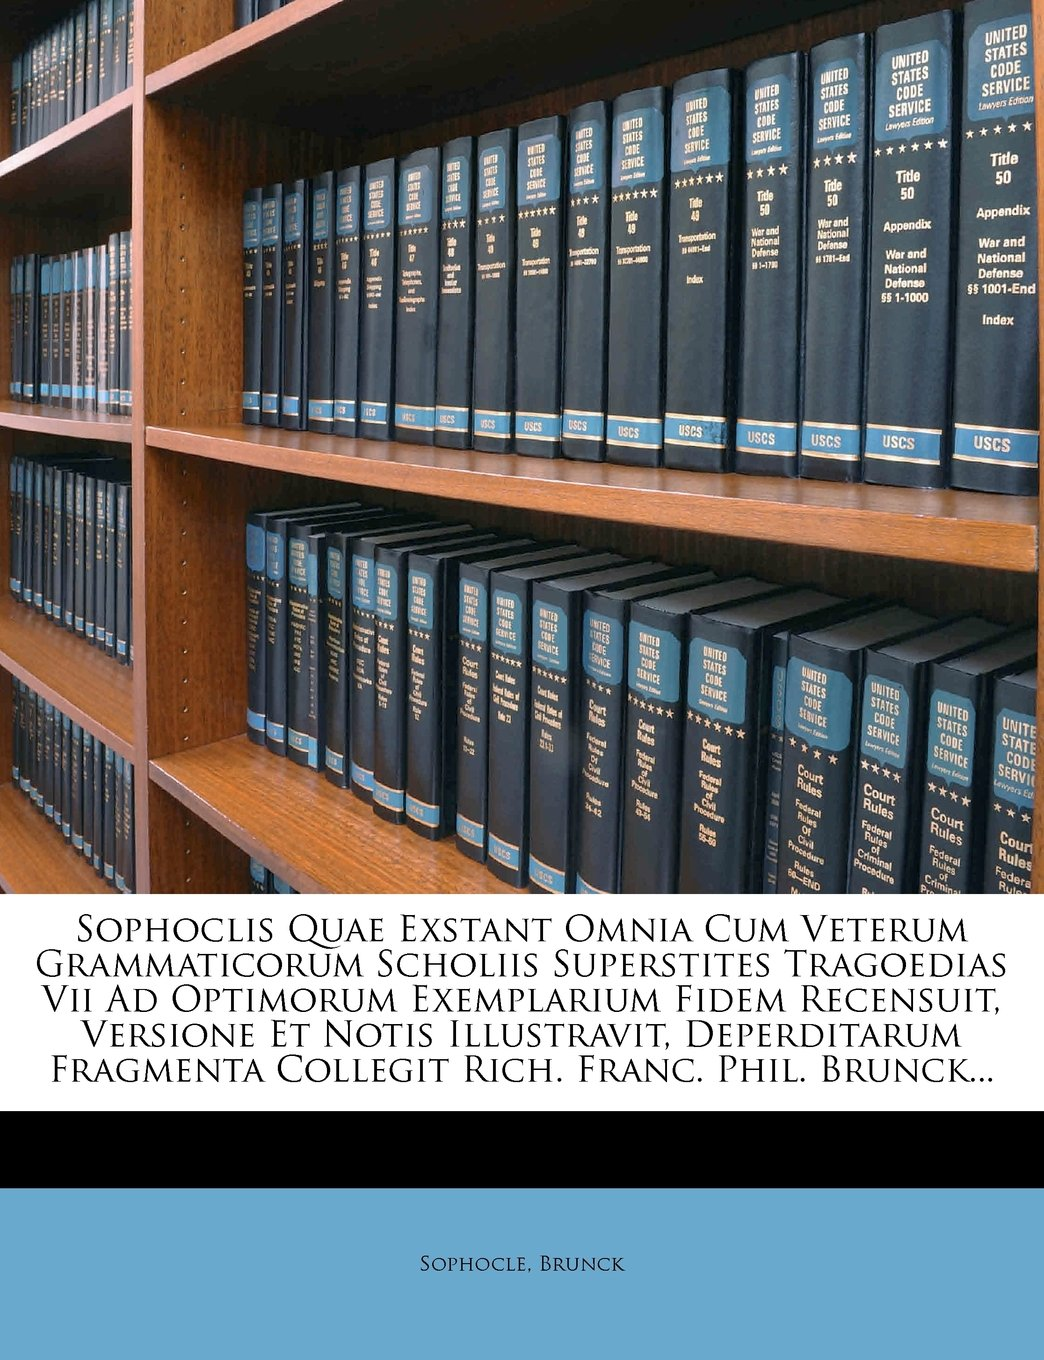 Download Sophoclis Quae Exstant Omnia Cum Veterum Grammaticorum Scholiis Superstites Tragoedias Vii Ad Optimorum Exemplarium Fidem Recensuit, Versione Et Notis ... Rich. Franc. Phil. Brunck... (Greek Edition) ebook